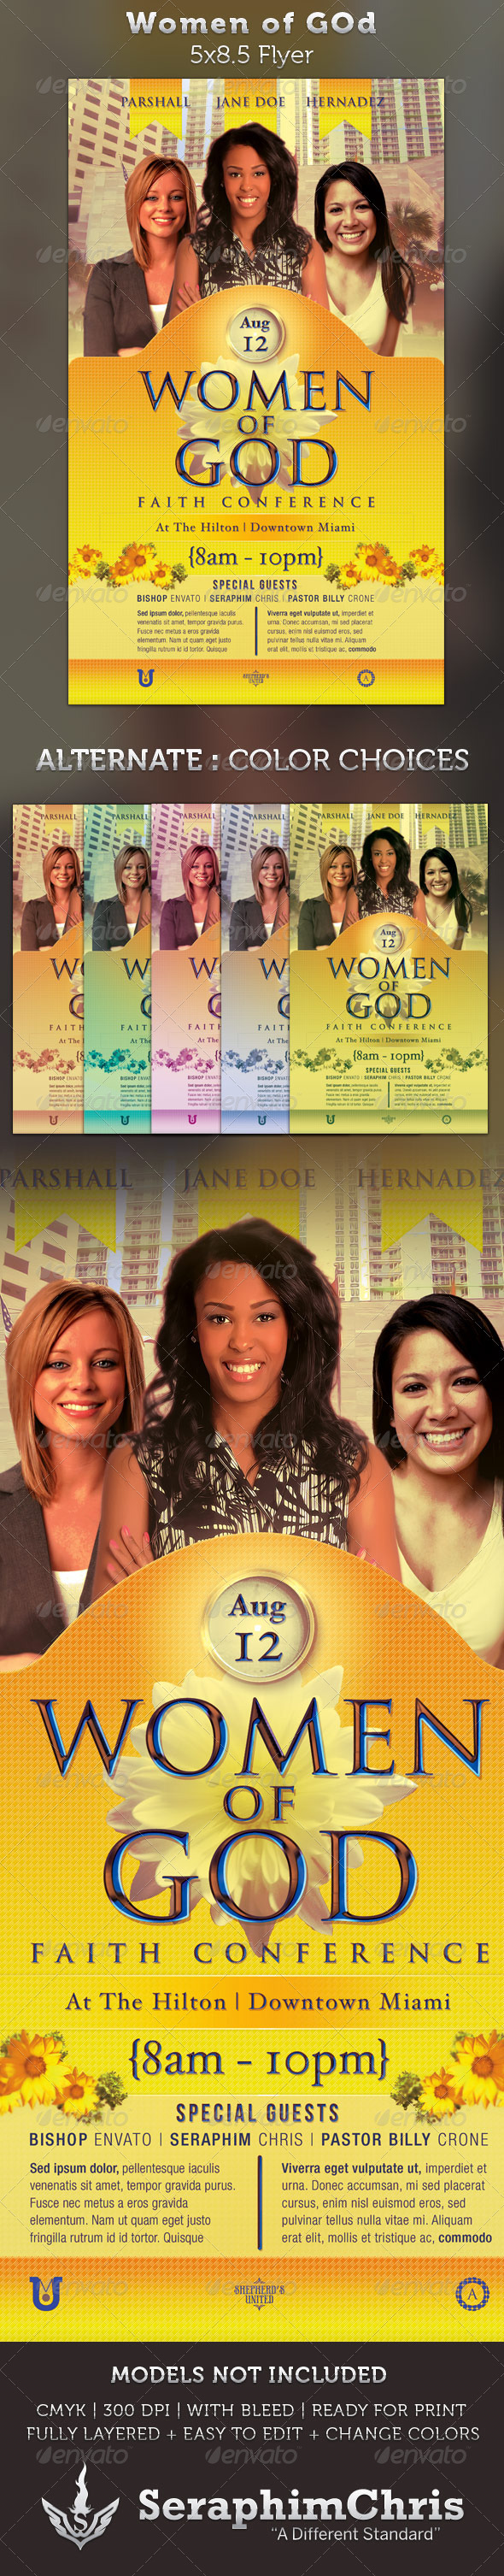 Women of God Faith Conference 5x8.5 Flyer Template - Church Flyers